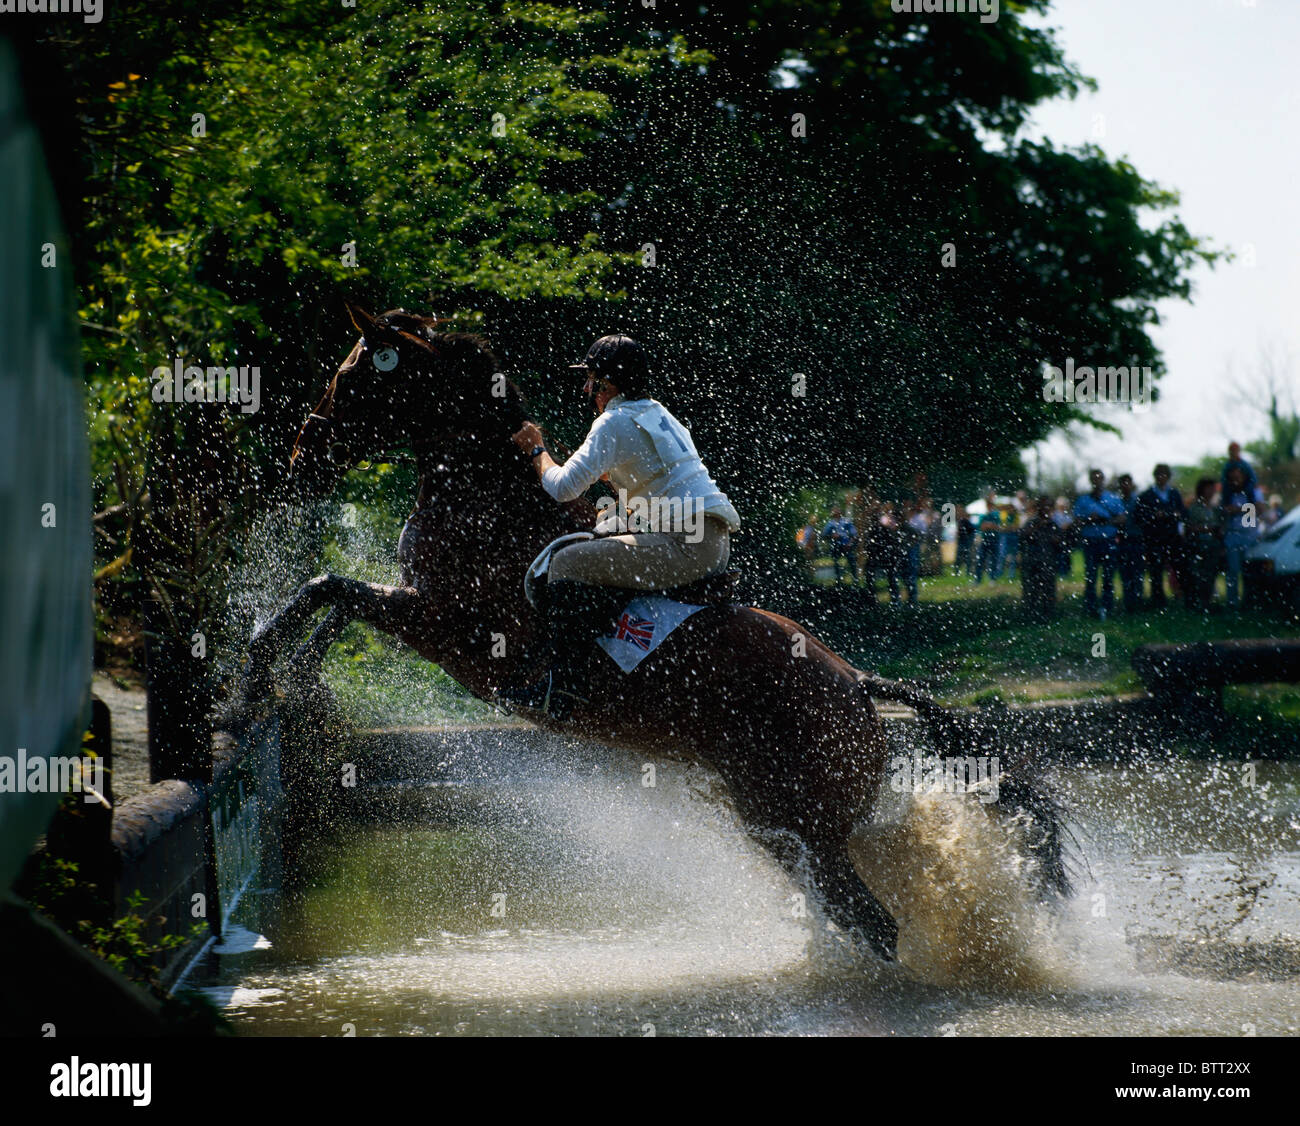 Point To Point Racing, Ireland - Stock Image